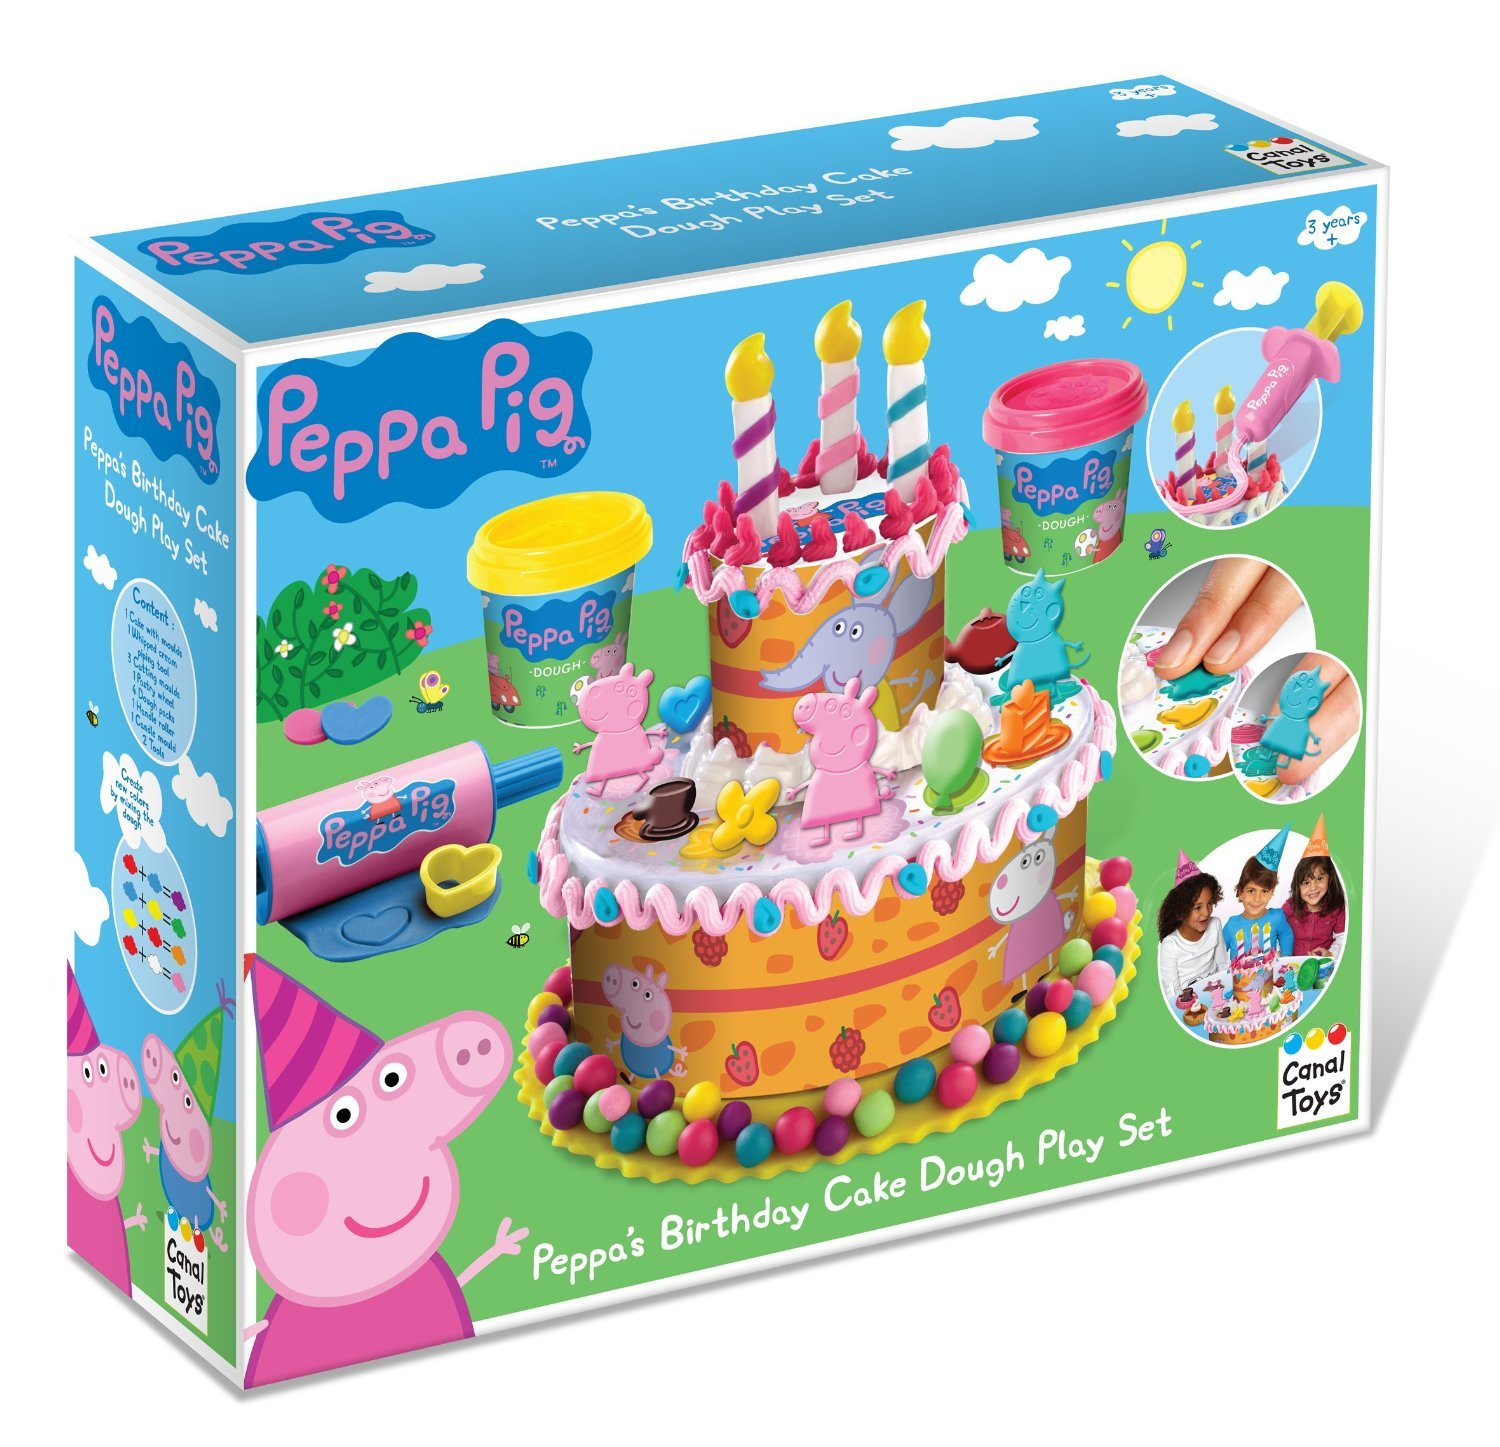 Buy Peppa Pig Birthday Cake Dough Set Compatible With Play Doh Ages 3 Online At Low Prices In India Amazon In